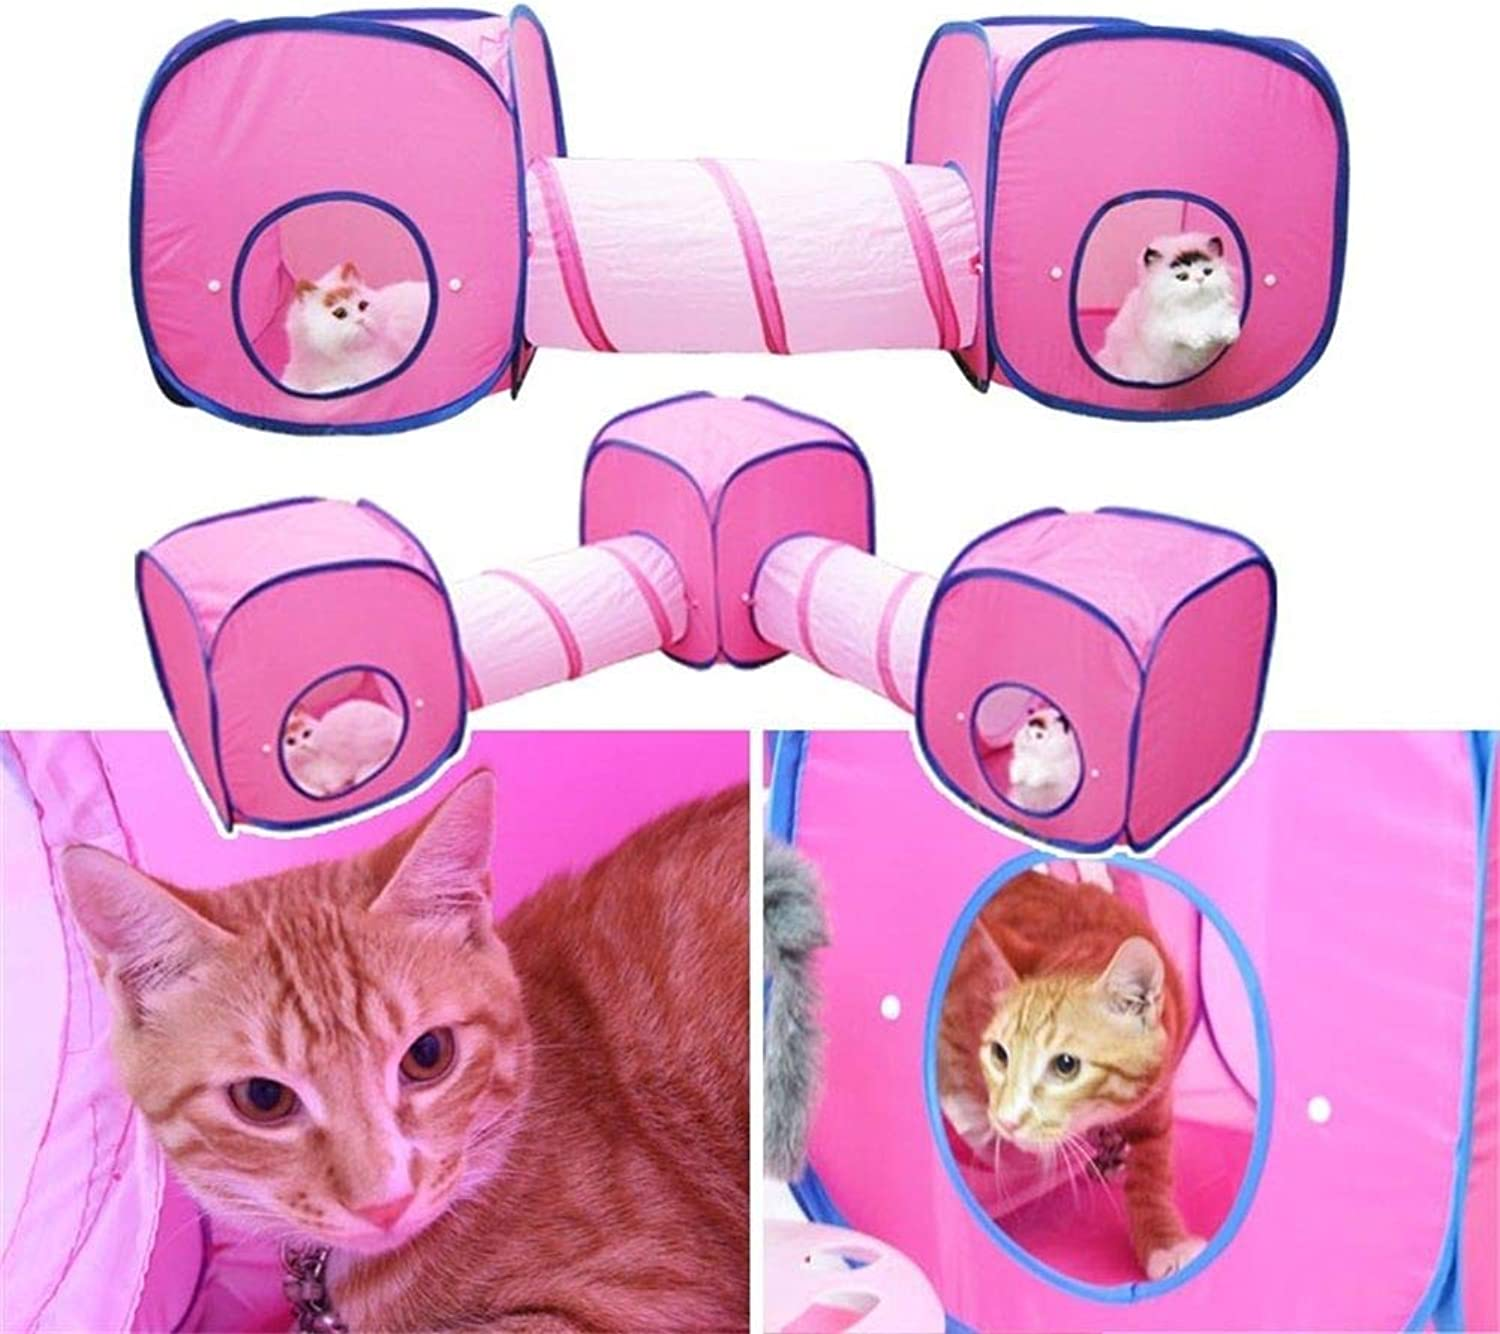 FidgetFidget Pet Foldable Play Cube Tent and Tunnel for Cat Kitty Rabbit 2 Cube Tents & 1 Tunnel